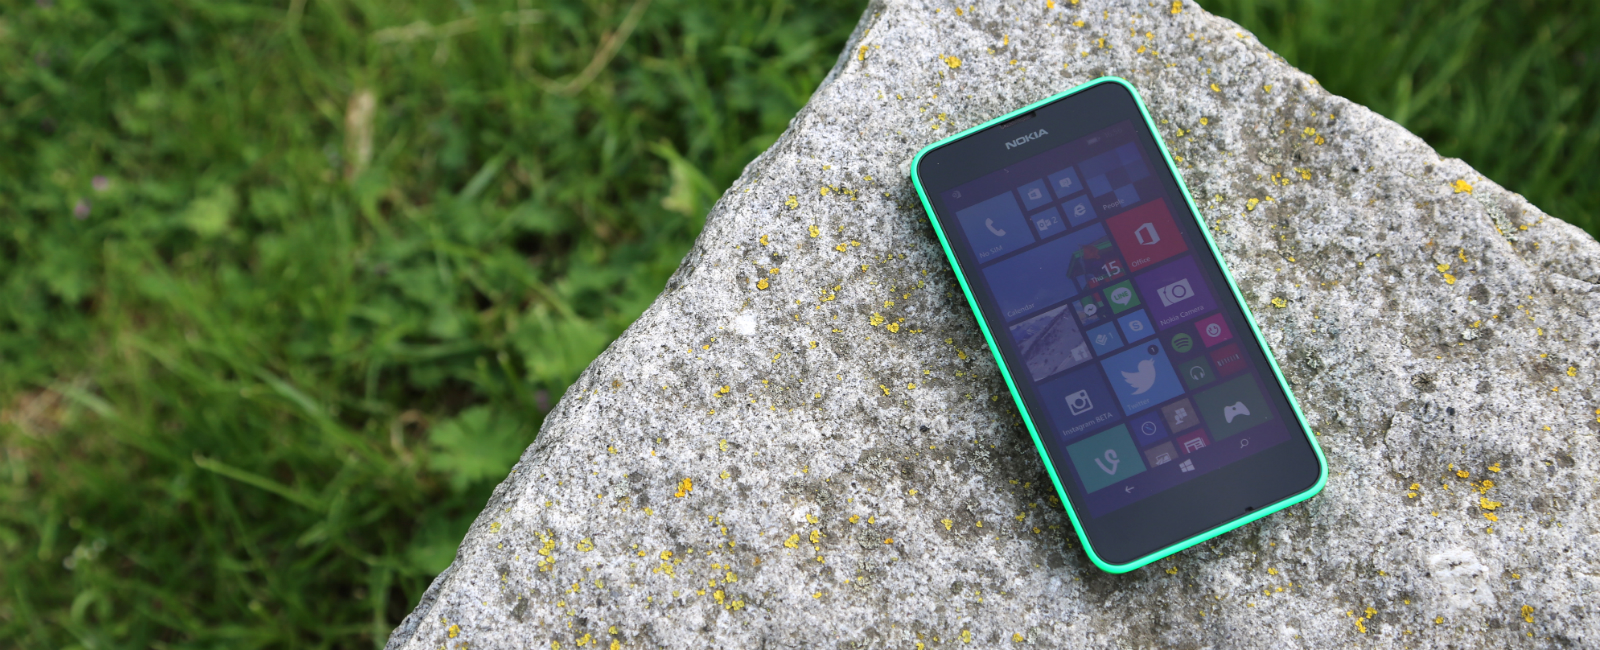 Nokia Lumia Smartphones added to Microsoft's Online Store in the UK